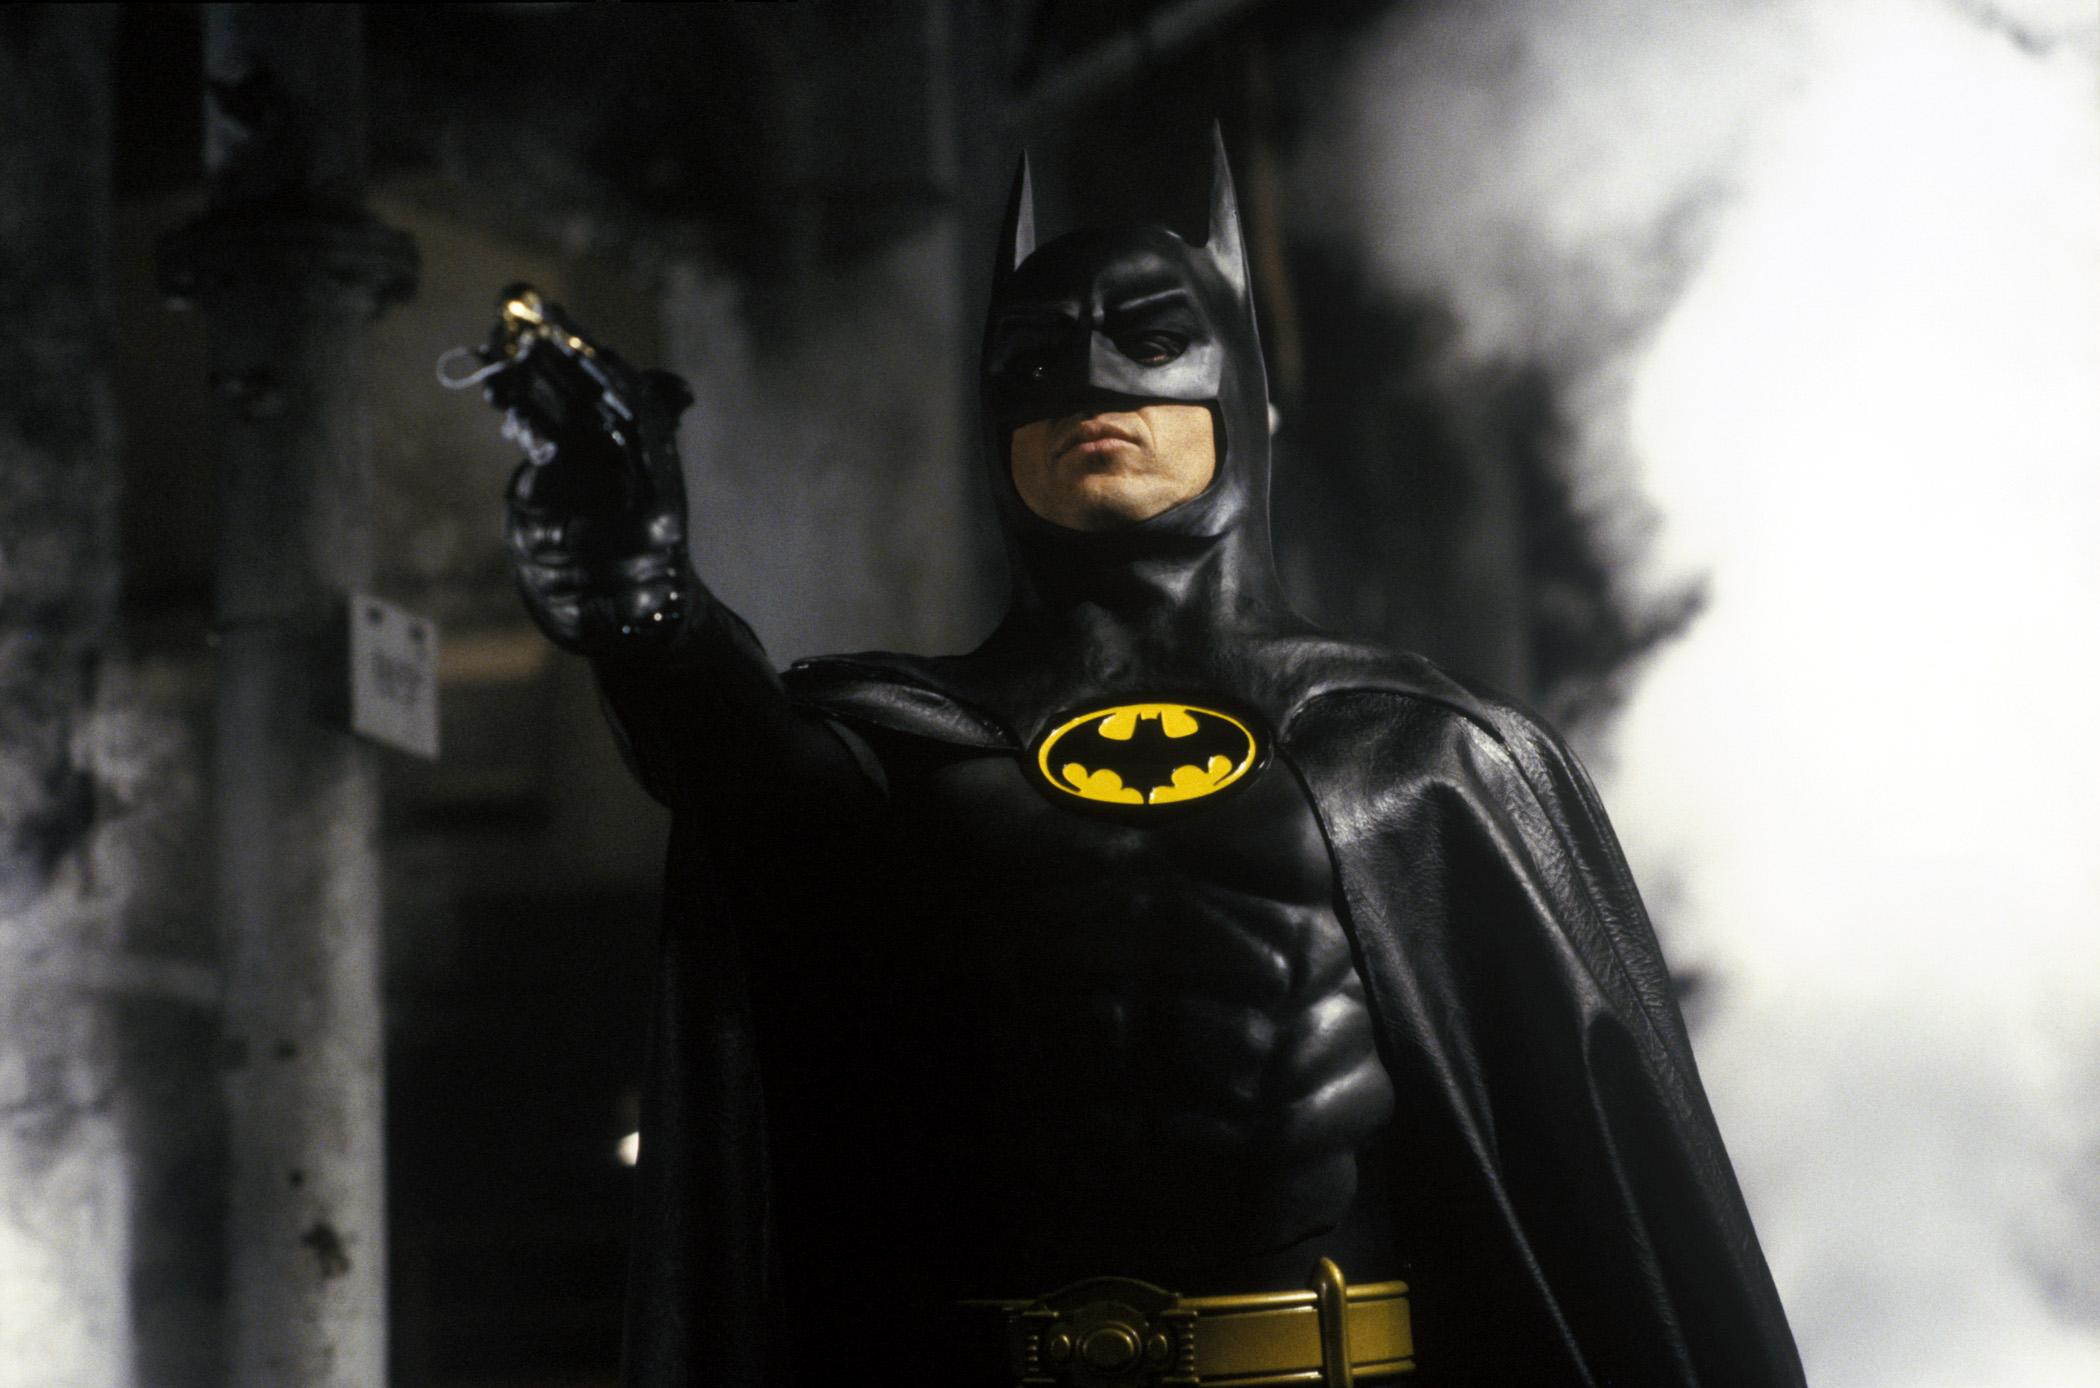 File:Batman-michael-keaton.jpg